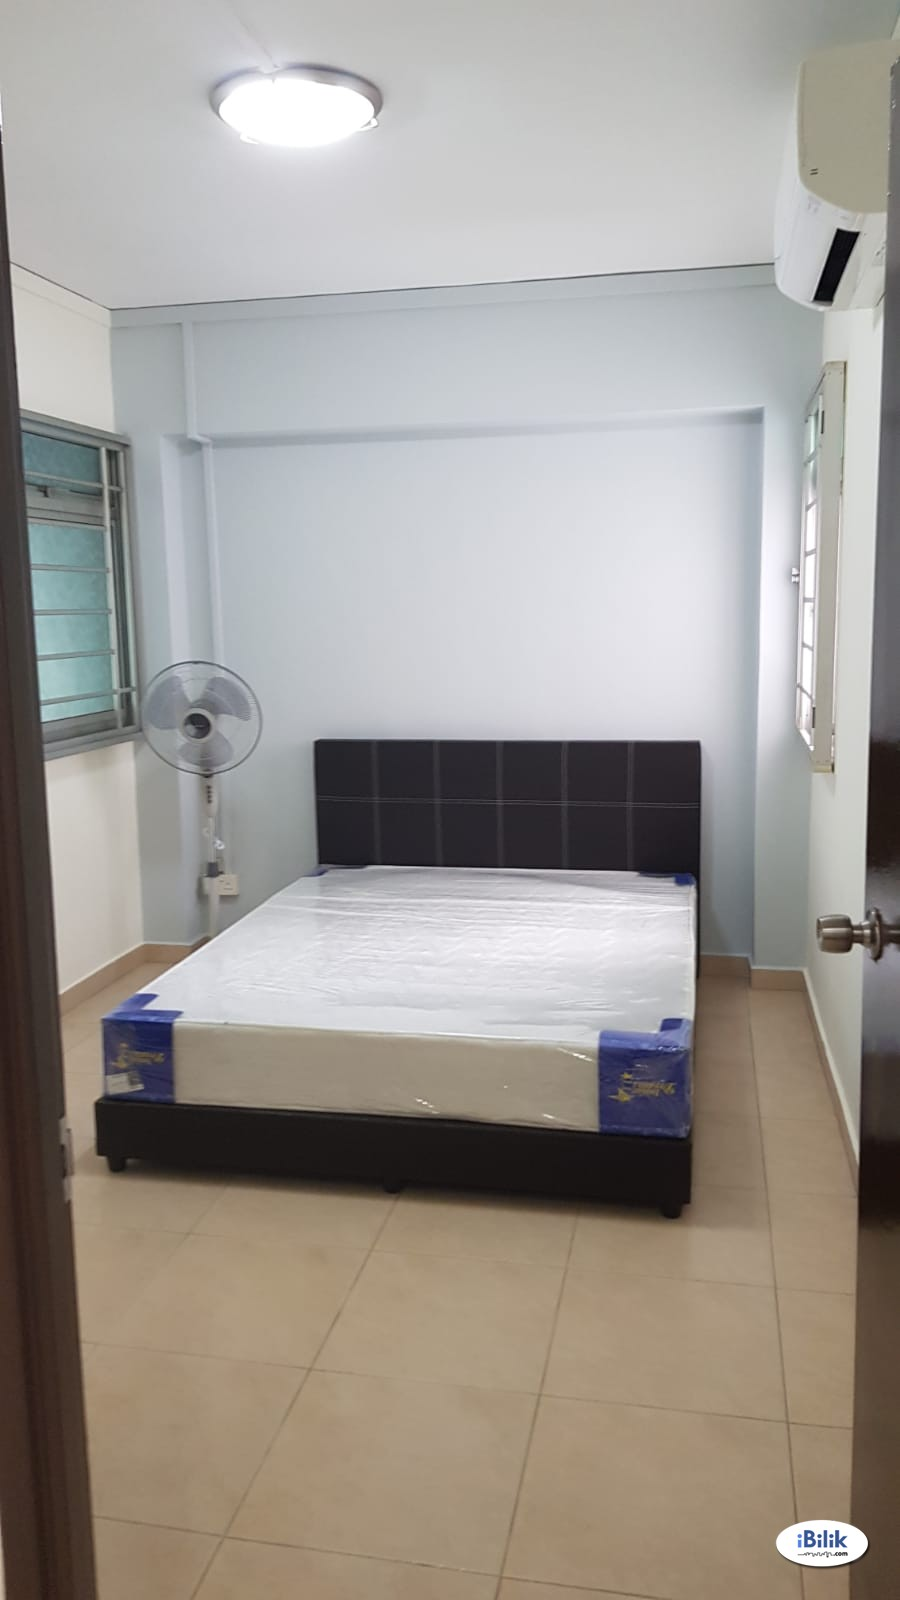 Two common rooms at 666 woodlands ring road for rent! Aircon wifi!